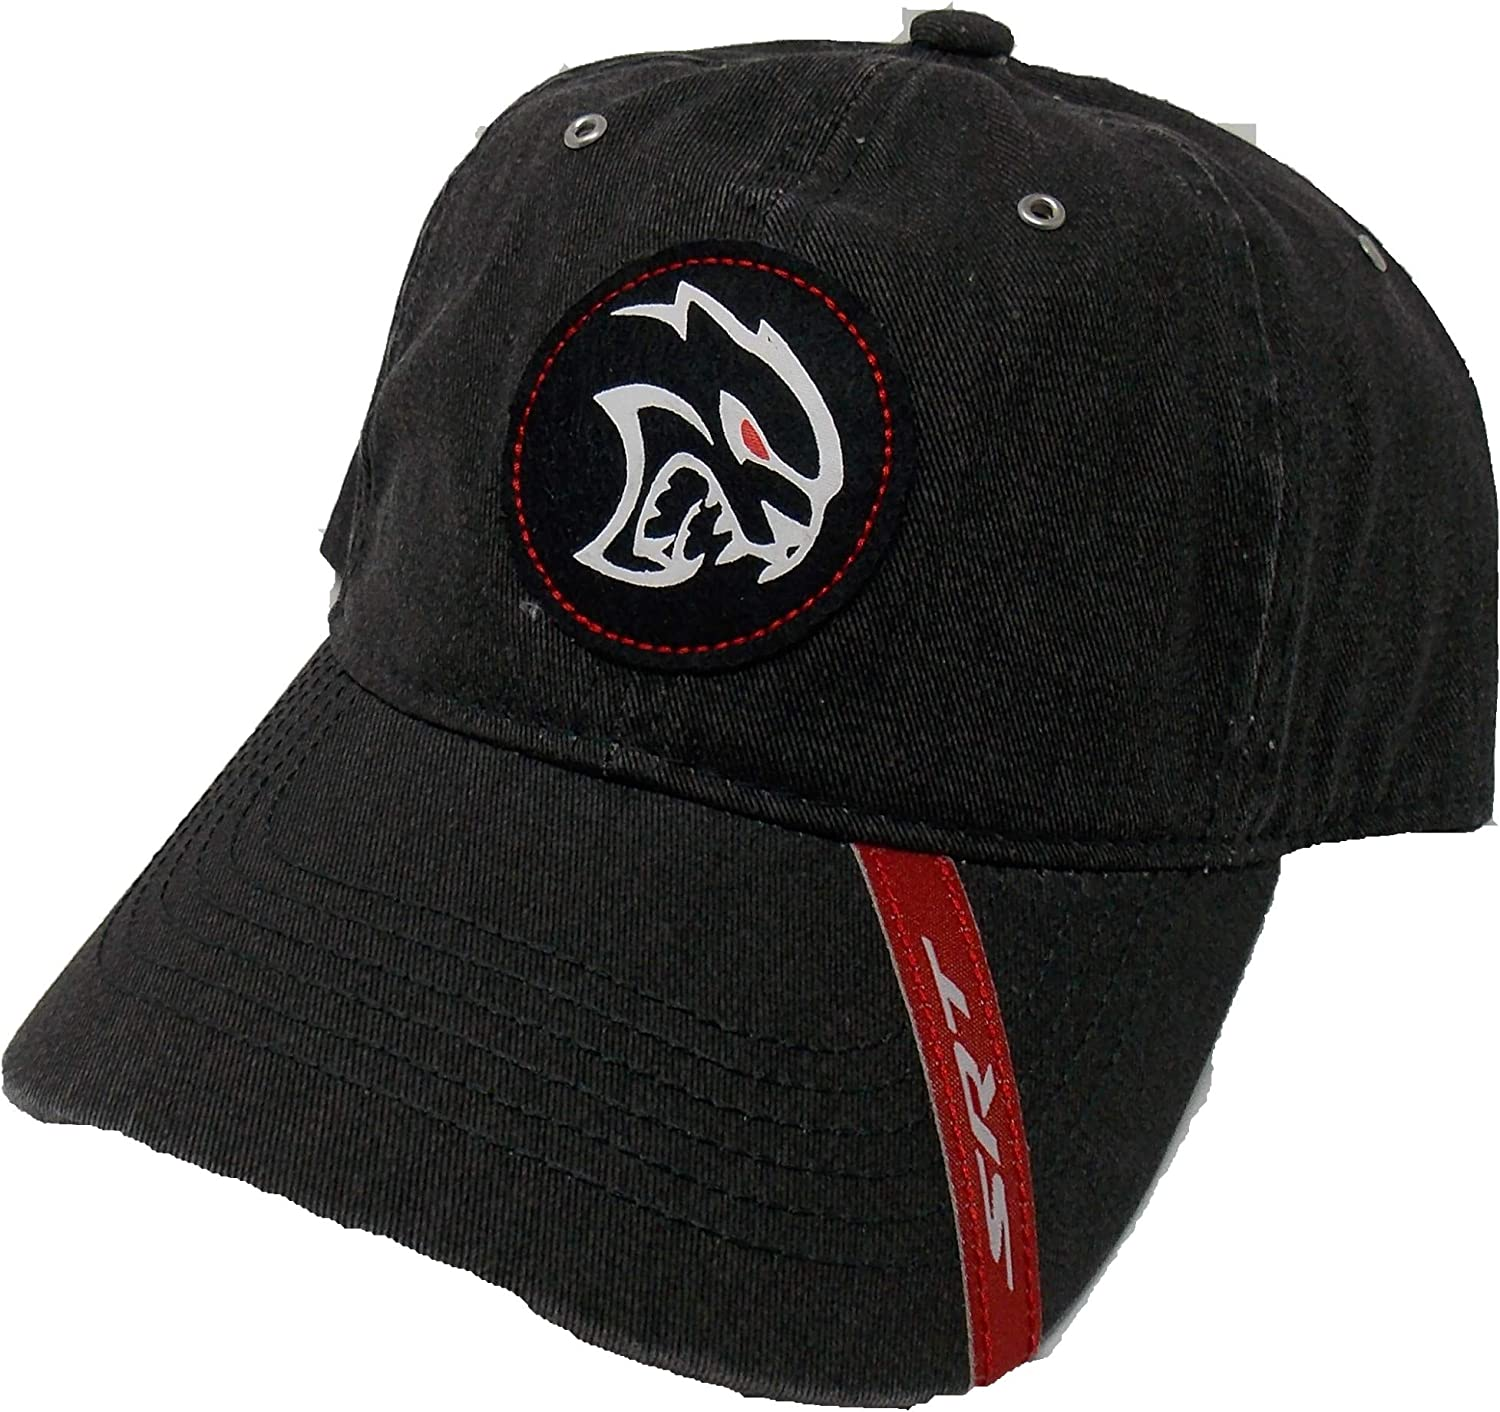 One Size Fits Most Black//Grey SRT Dodge Hellcat Two Tone Cap